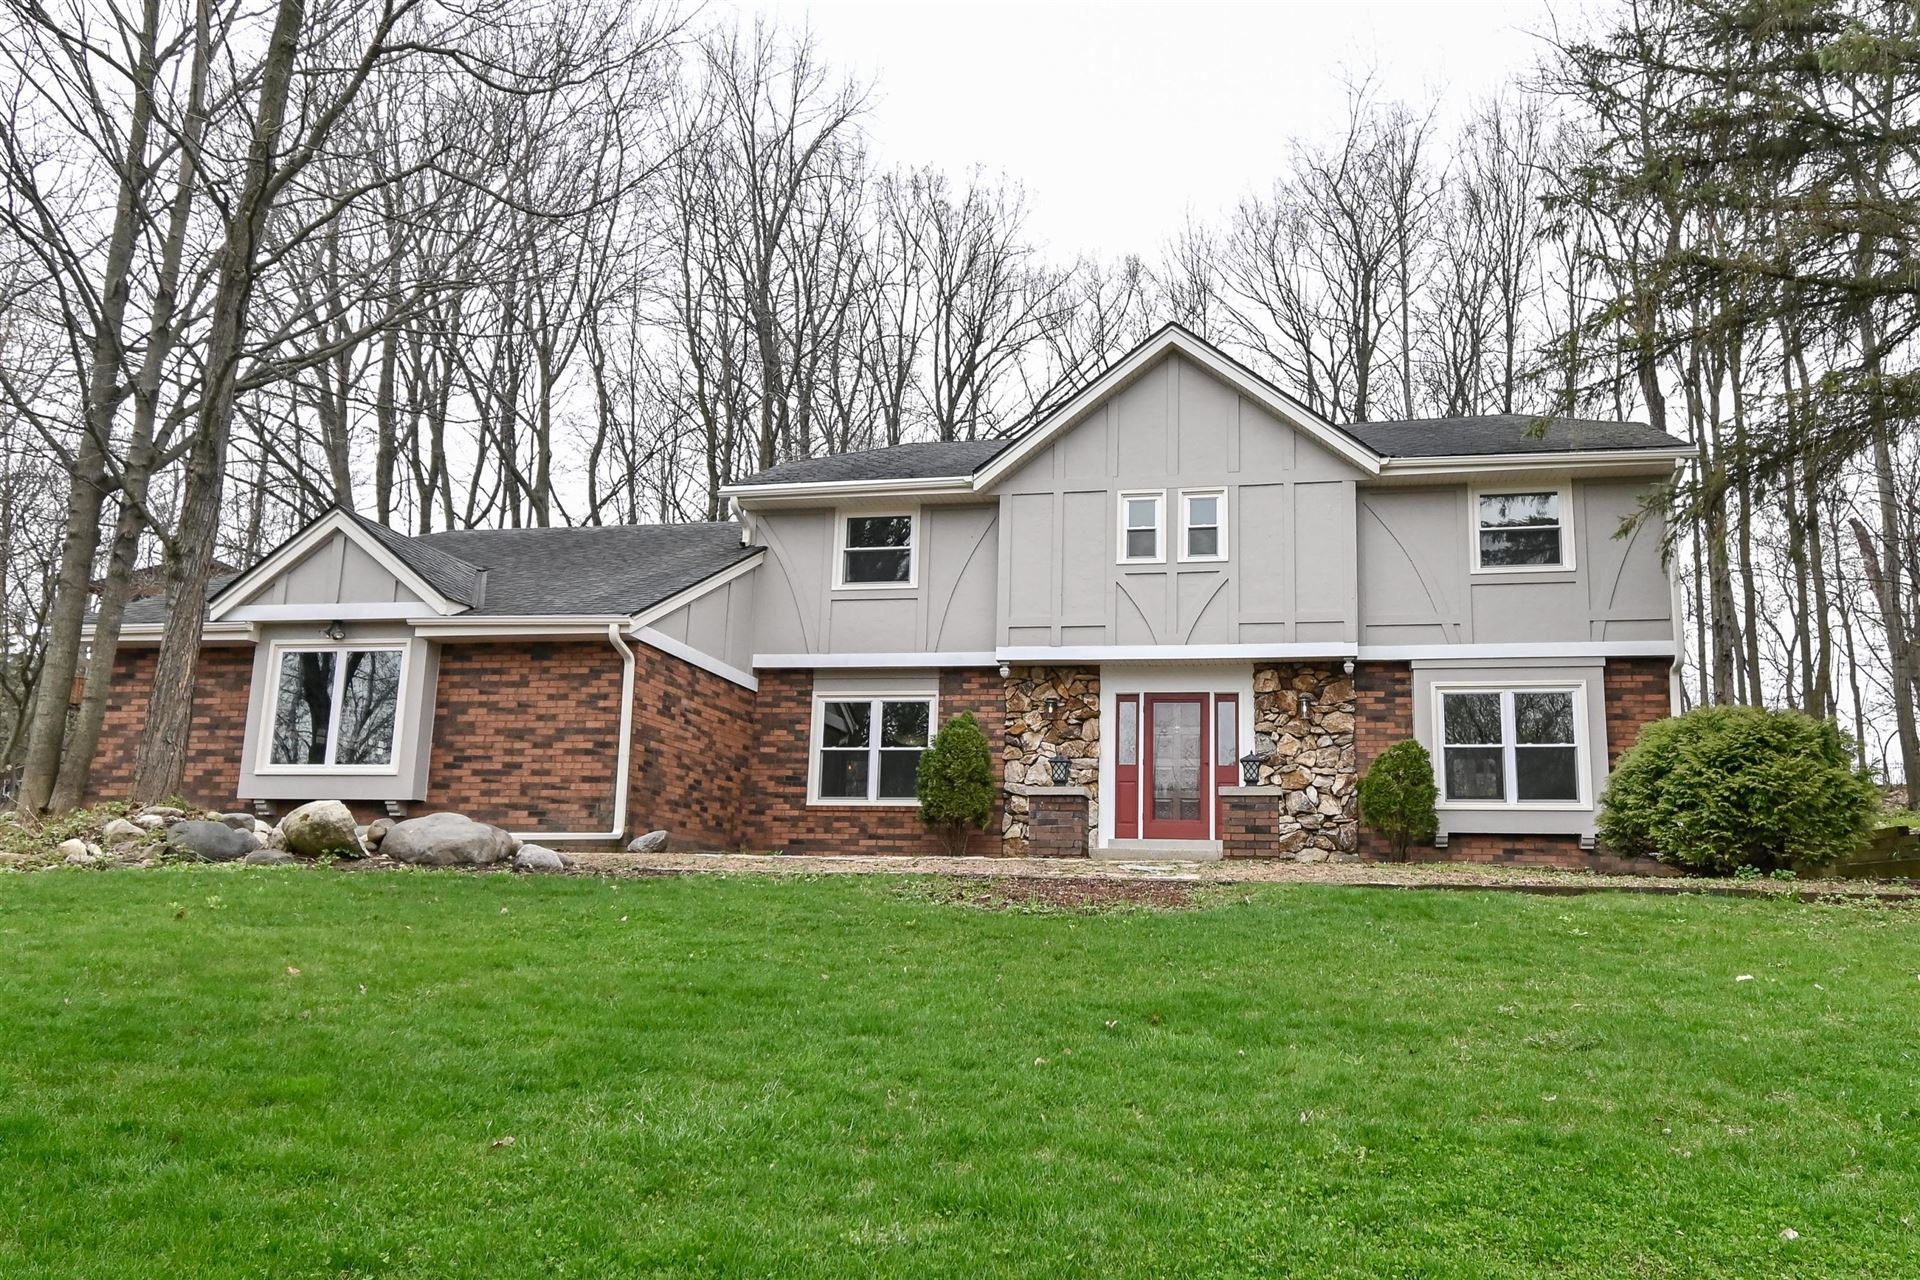 1580 Valley Forge Ct, Brookfield, WI 53045 - #: 1686701